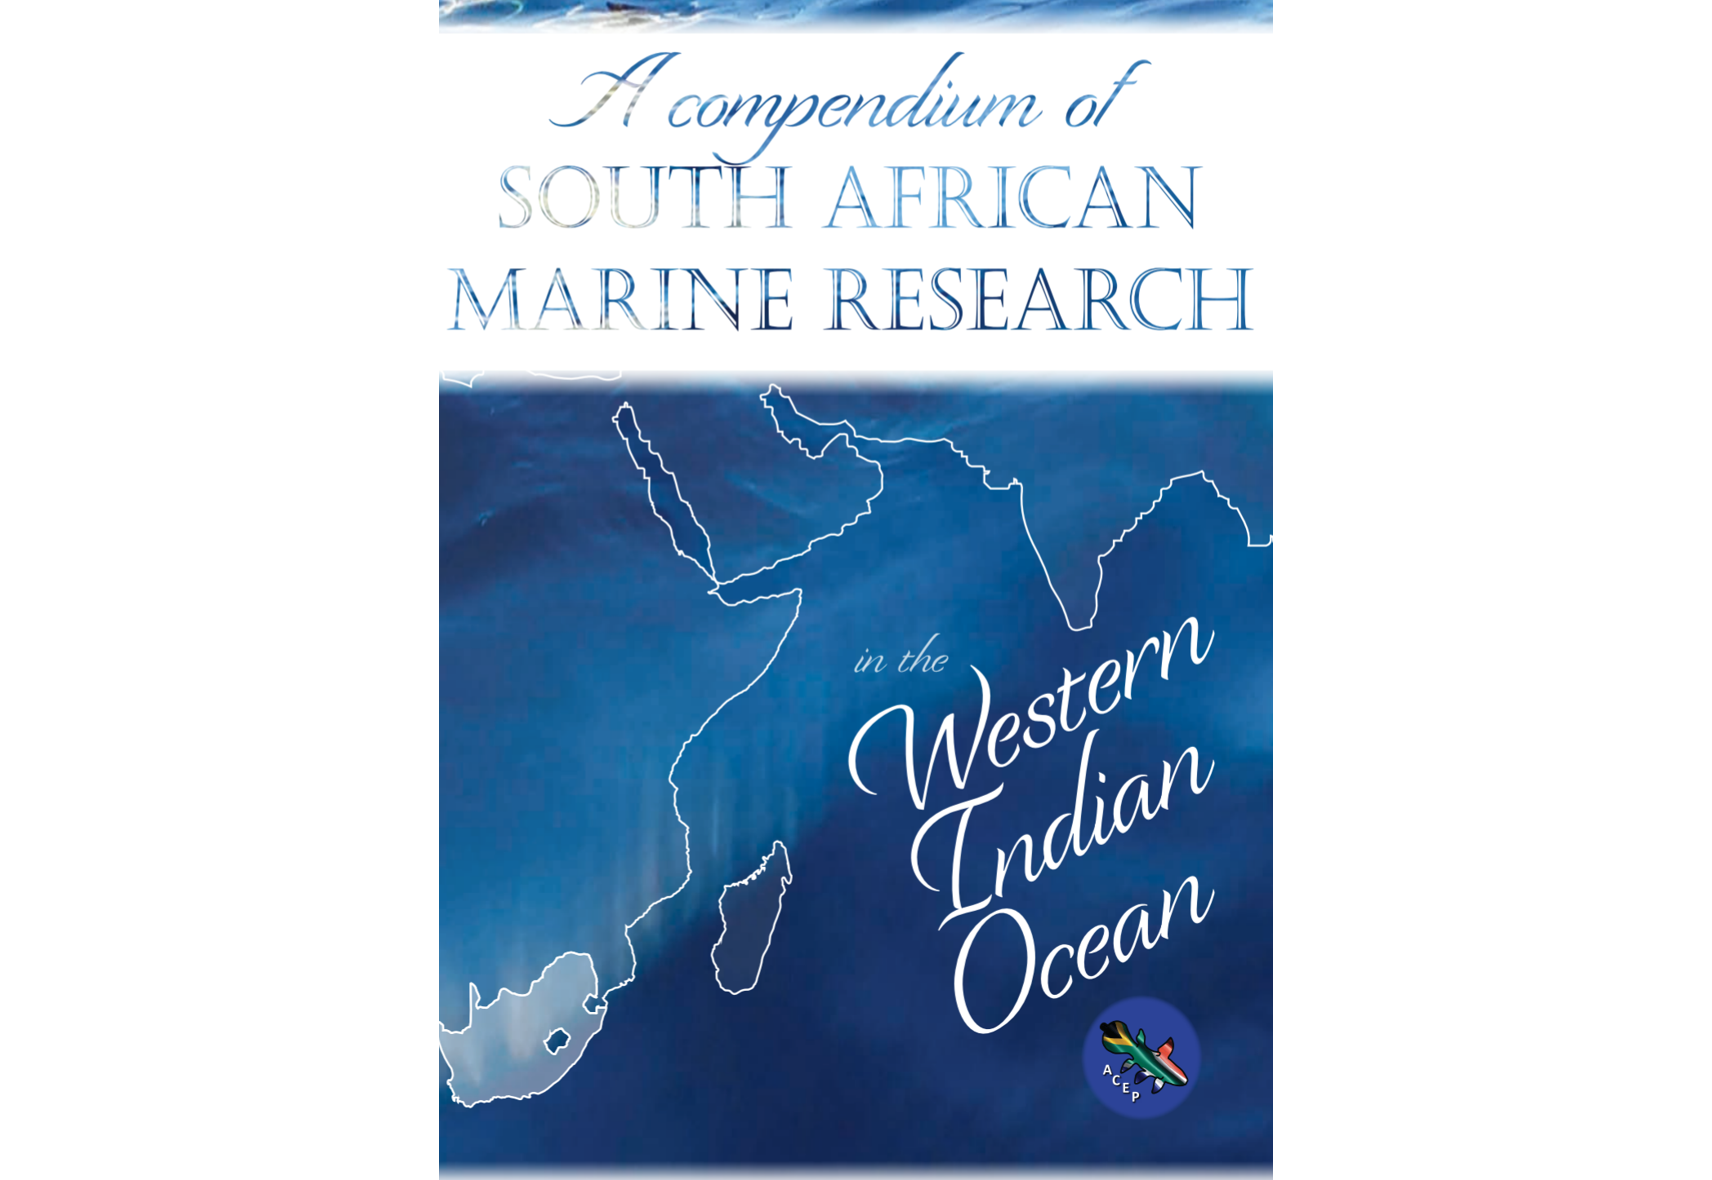 Oceans Research in the Compendium of South African Marine Research